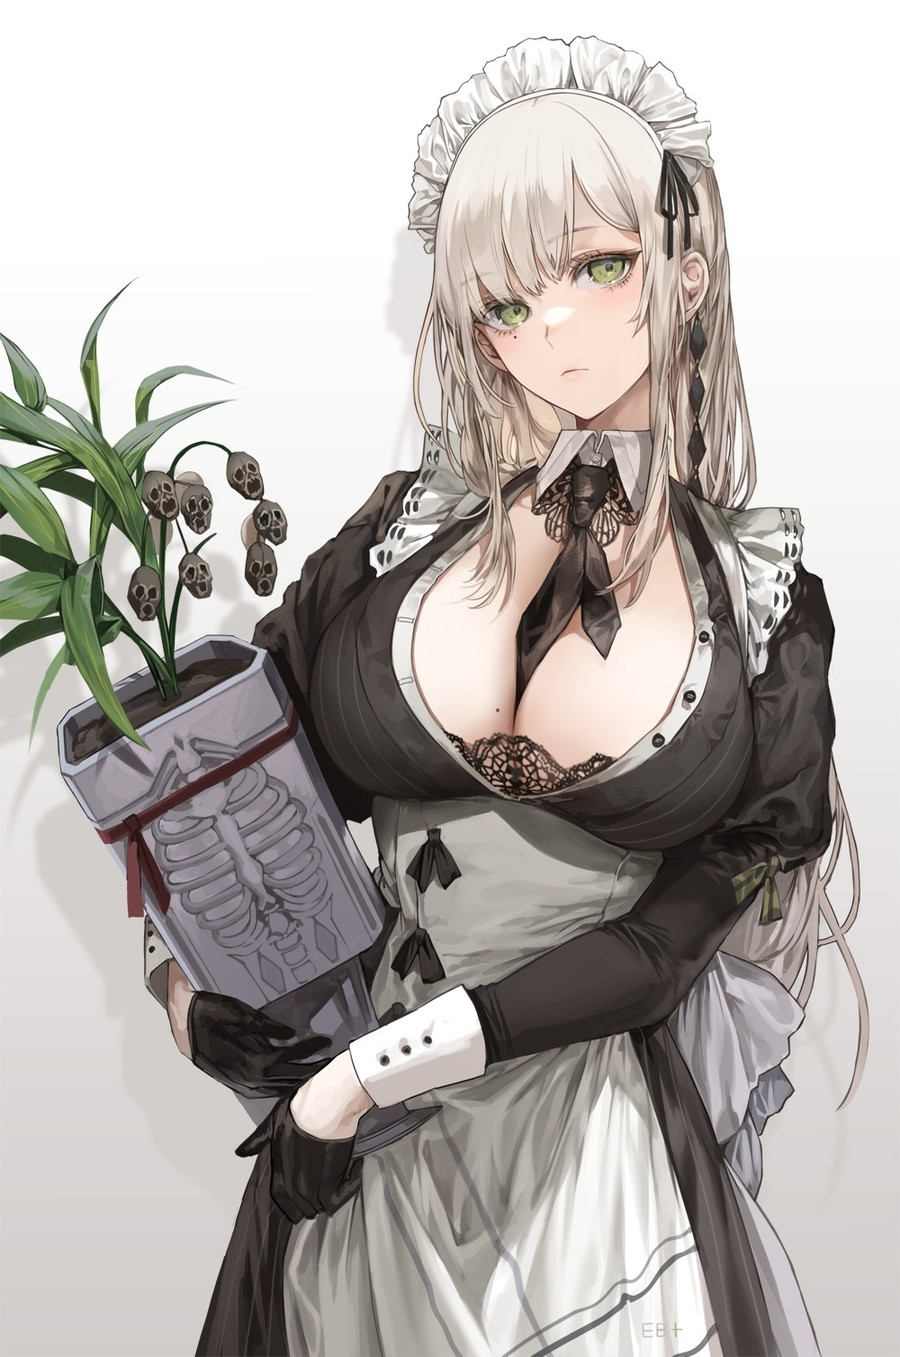 Maid March part 8. join list: SplendidServants (495 subs)Mention History join list:. Helose